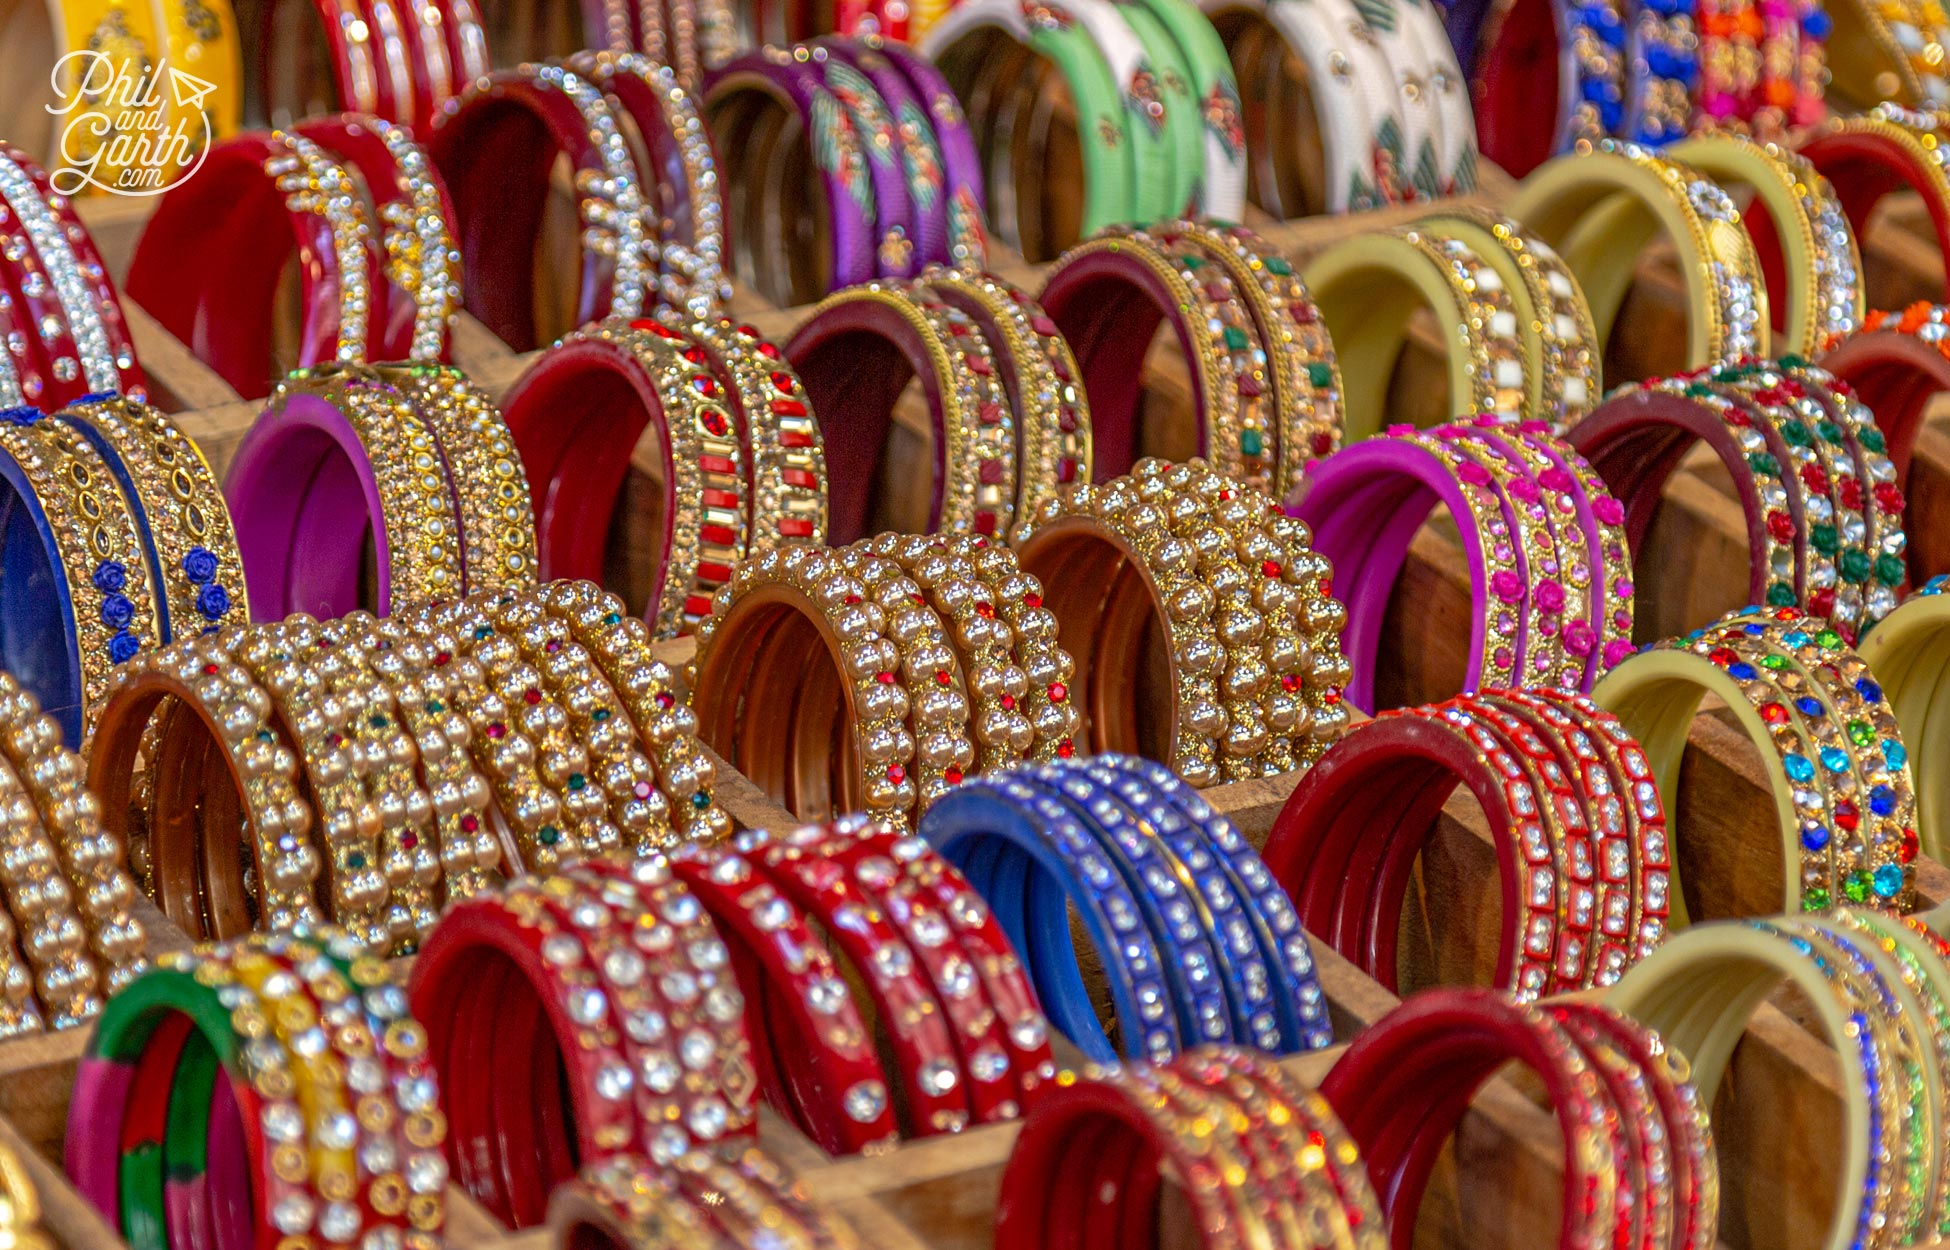 So many colourful bangles for sale in Pushkar's various bazaars